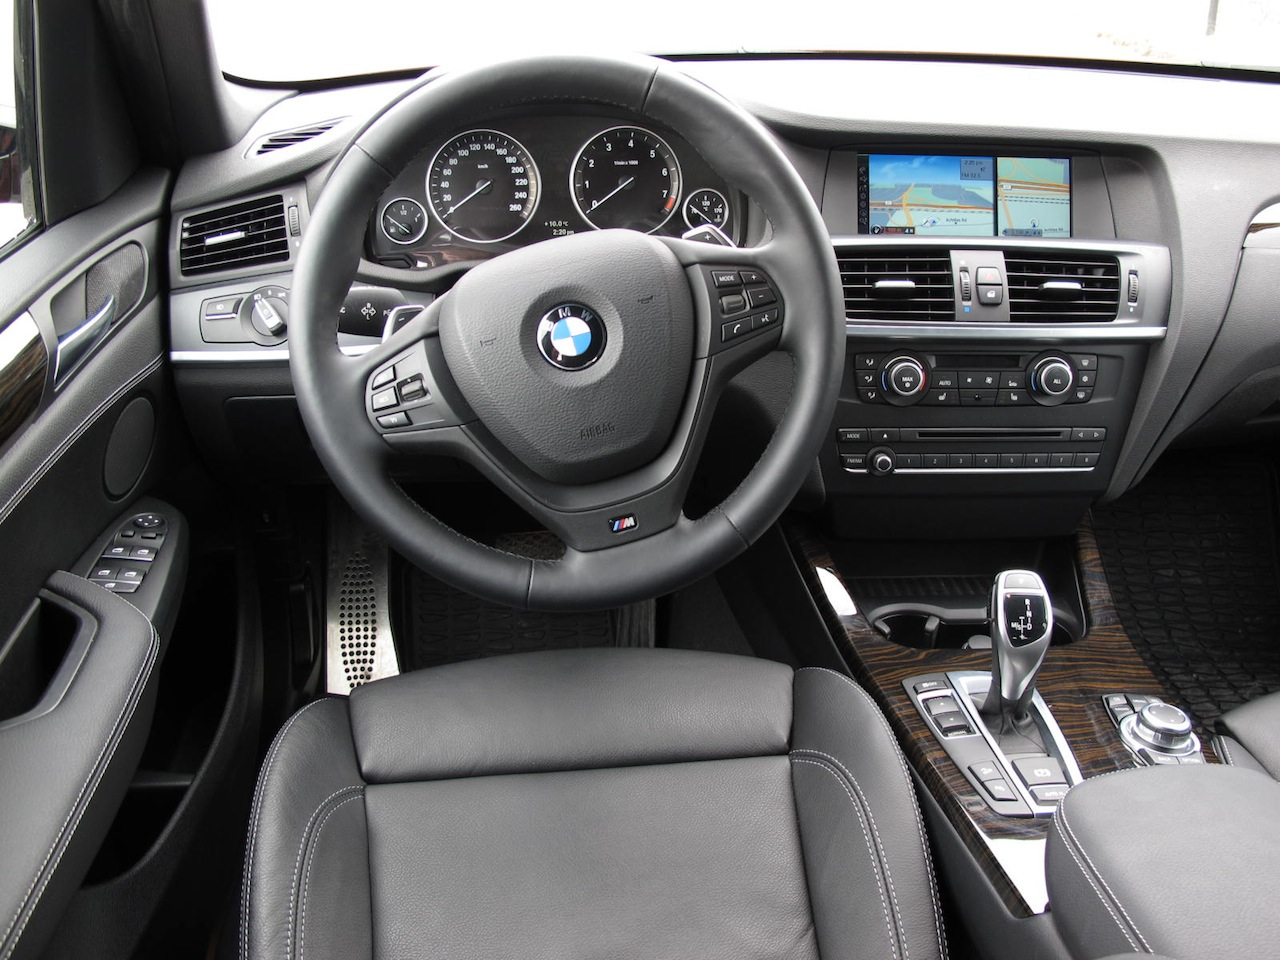 2013 BMW X3 XDrive35i Red Interior Dashboard Msport